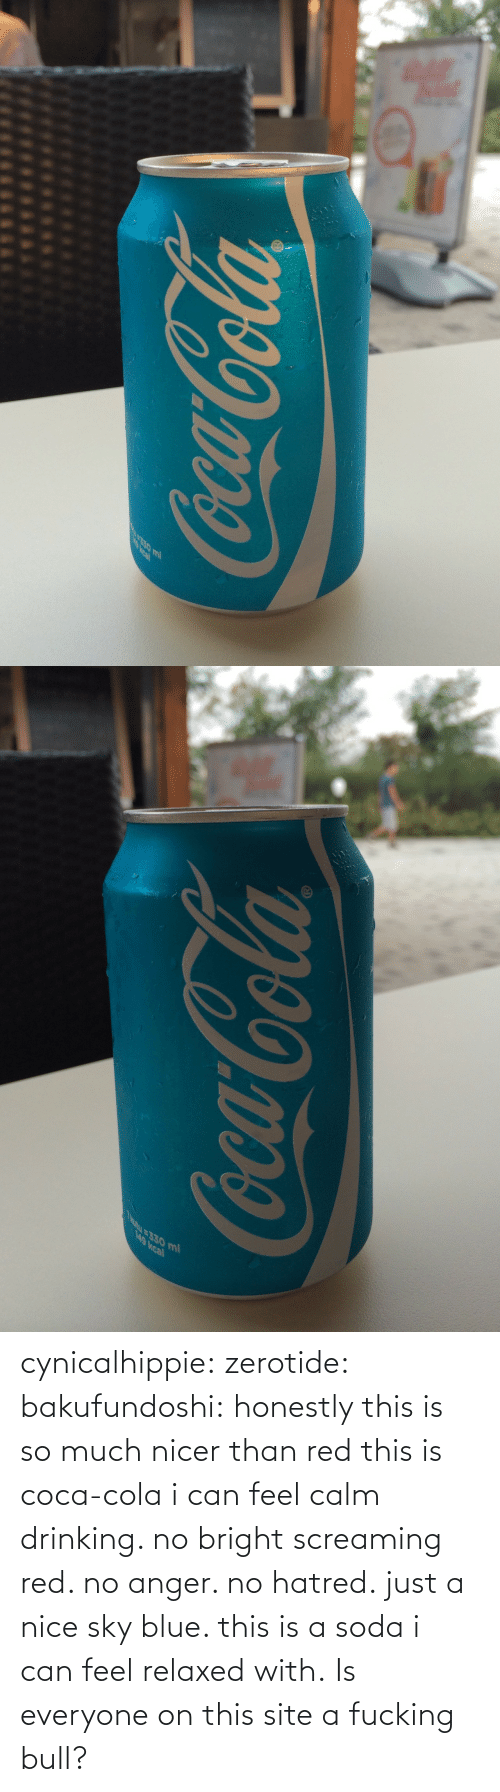 Blue: cynicalhippie:  zerotide:  bakufundoshi:  honestly this is so much nicer than red  this is coca-cola i can feel calm drinking. no bright screaming red. no anger. no hatred. just a nice sky blue. this is a soda i can feel relaxed with.   Is everyone on this site a fucking bull?